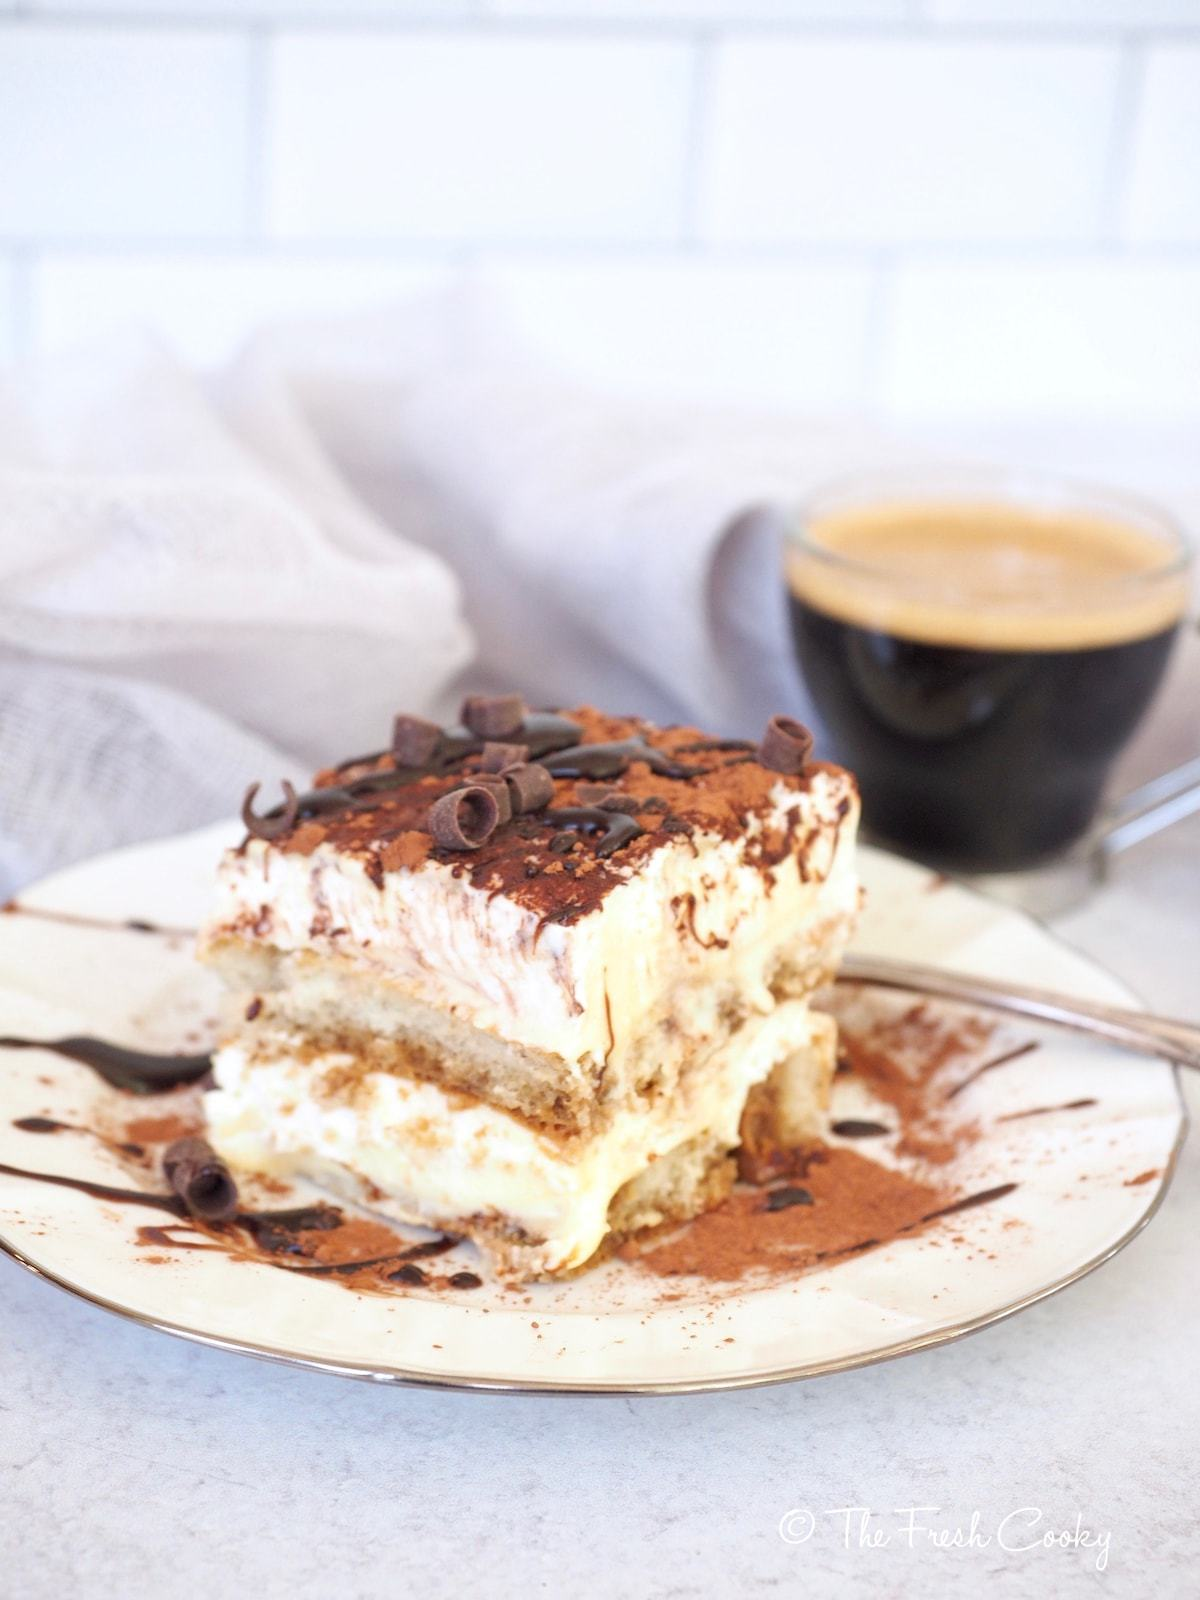 A plate with a slice of Italian layered Tiramisu with a shot of Espresso in the background